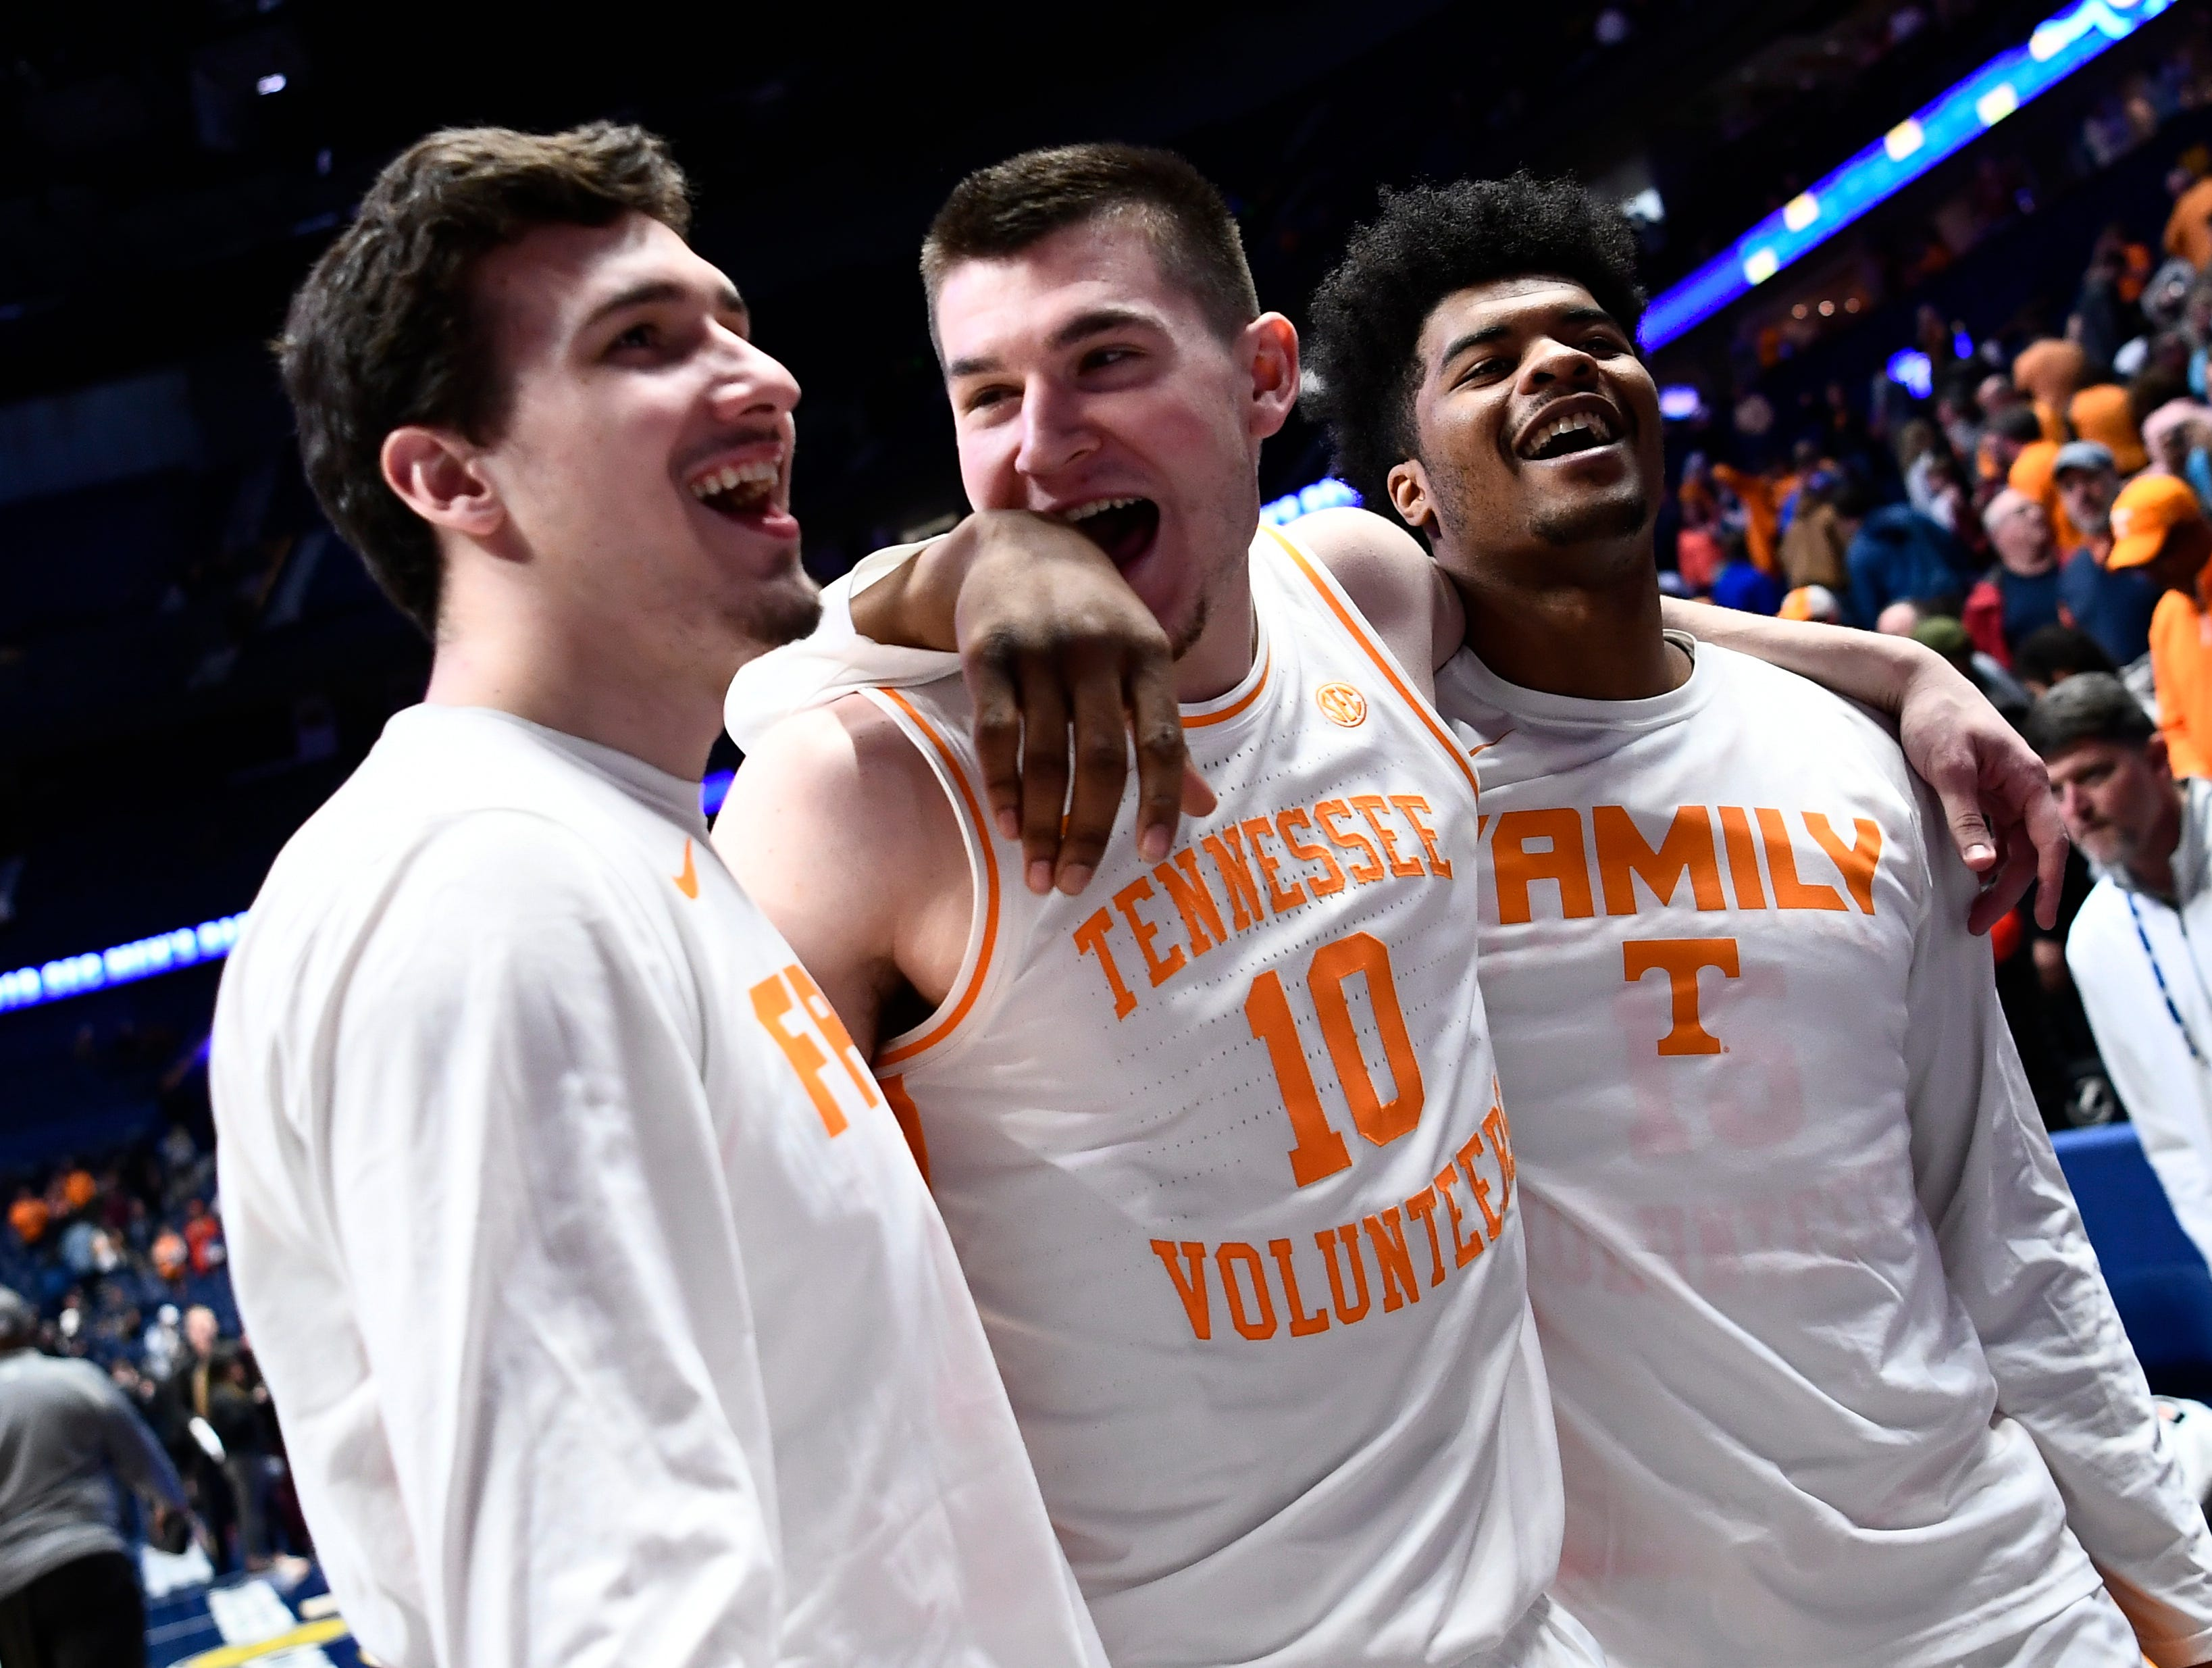 Tennessee forward John Fulkerson (10) walks off the court with forward Brock Jancek (34) and forward Derrick Walker (15) after beating Mississippi State in the  SEC Men's Basketball Tournament at Bridgestone Arena in Nashville, Tenn., Friday, March 15, 2019.